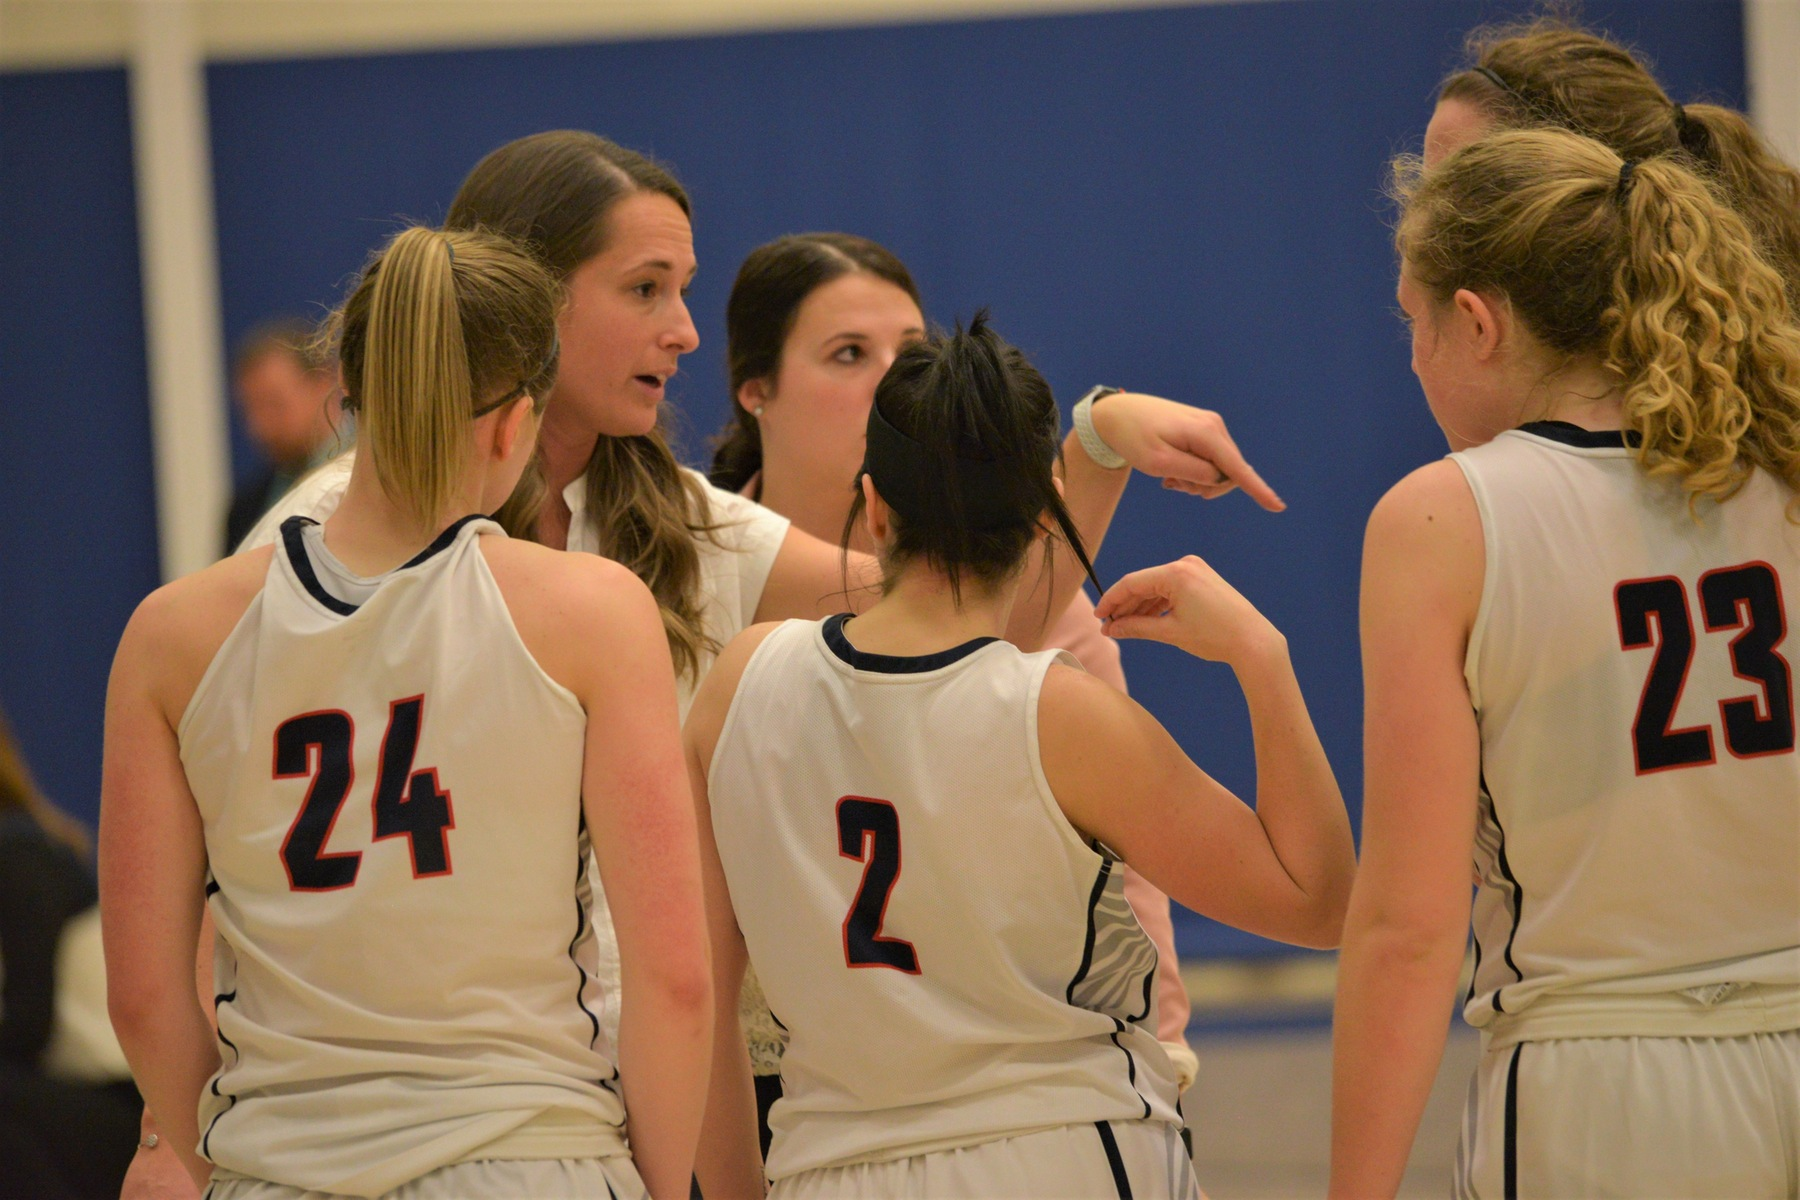 Lions Fall to Wittenberg in Behrend Tip-Off Tournament